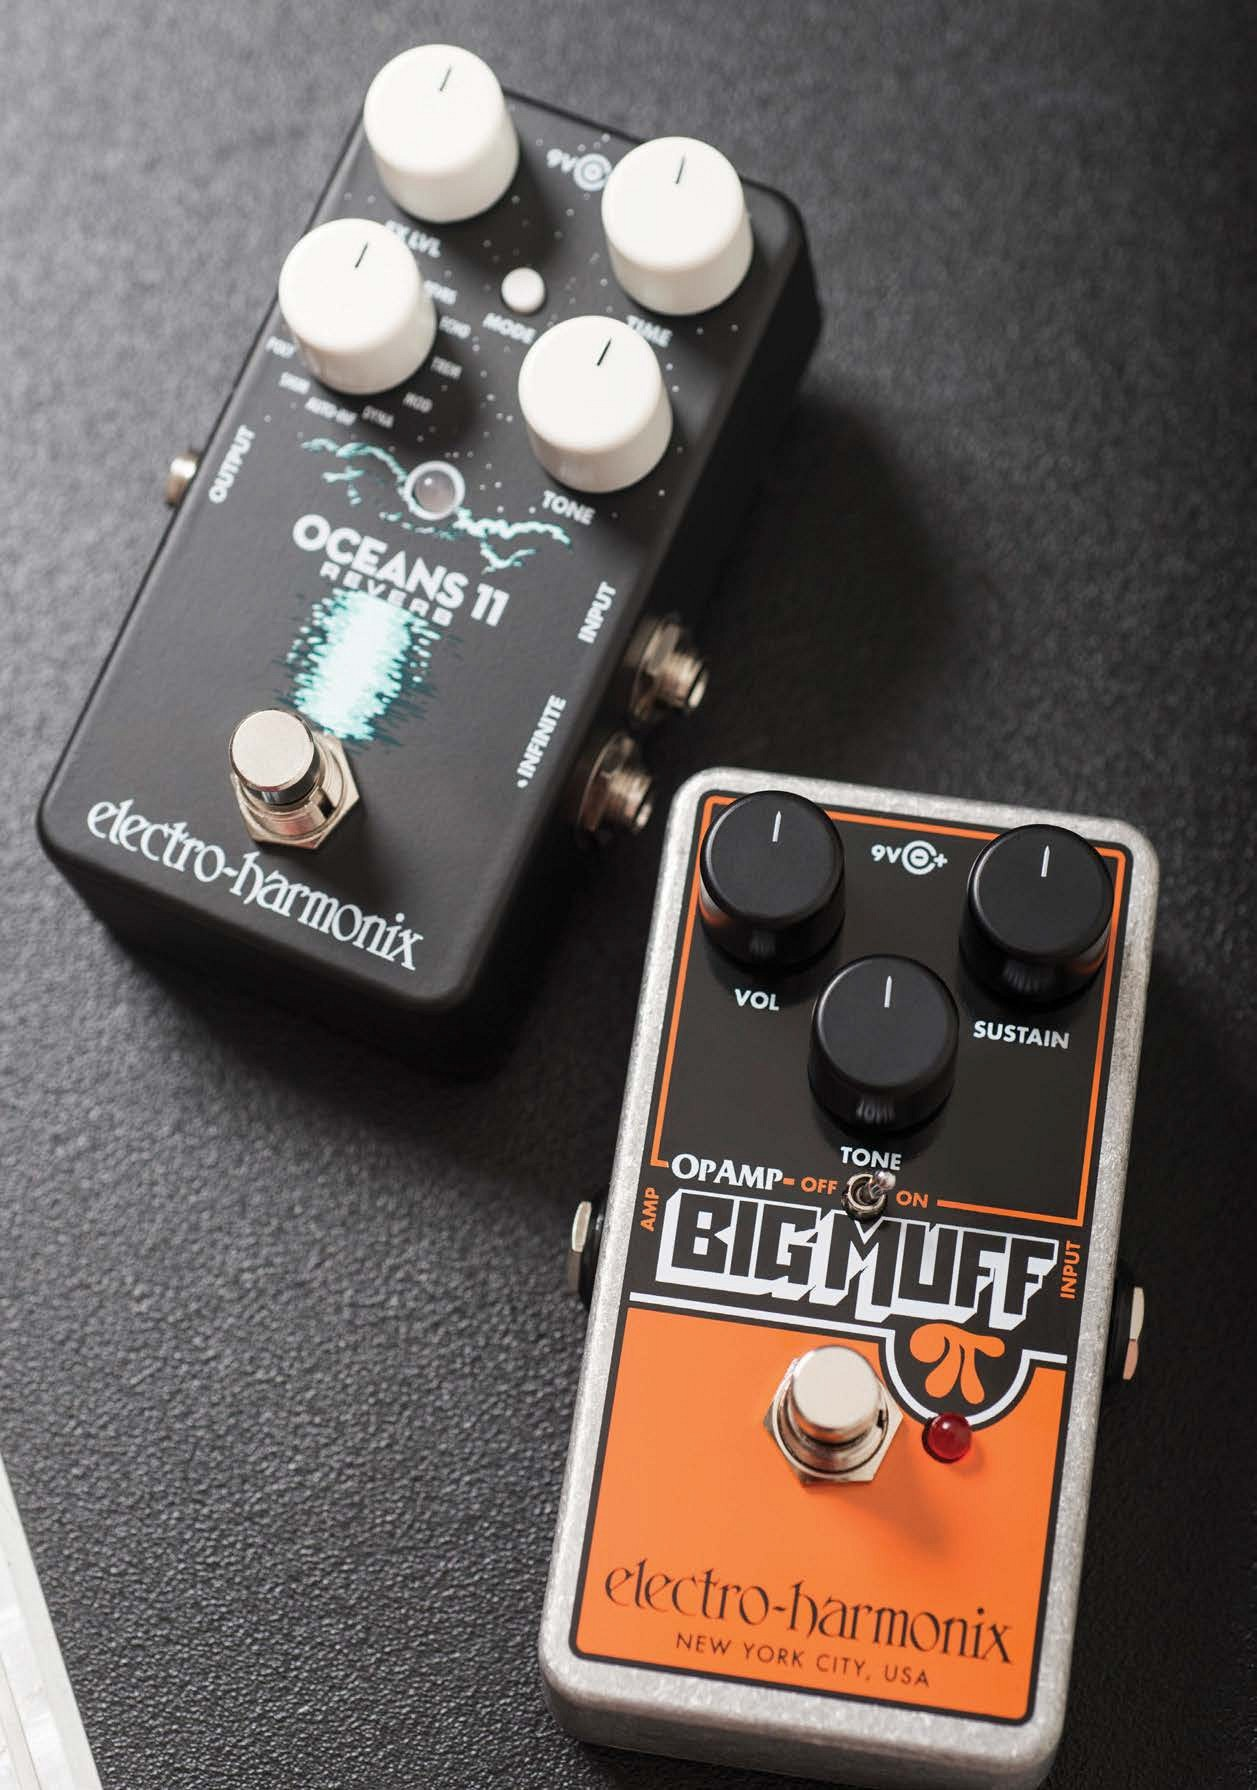 Electro Harmonix Oceans 11 Op Amp Big Muff Pi Effect First Established In 1967 Is Arguably The Closest Thing We Have To A Heritage Effects Pedal Brand Sounds Created By These Legendary